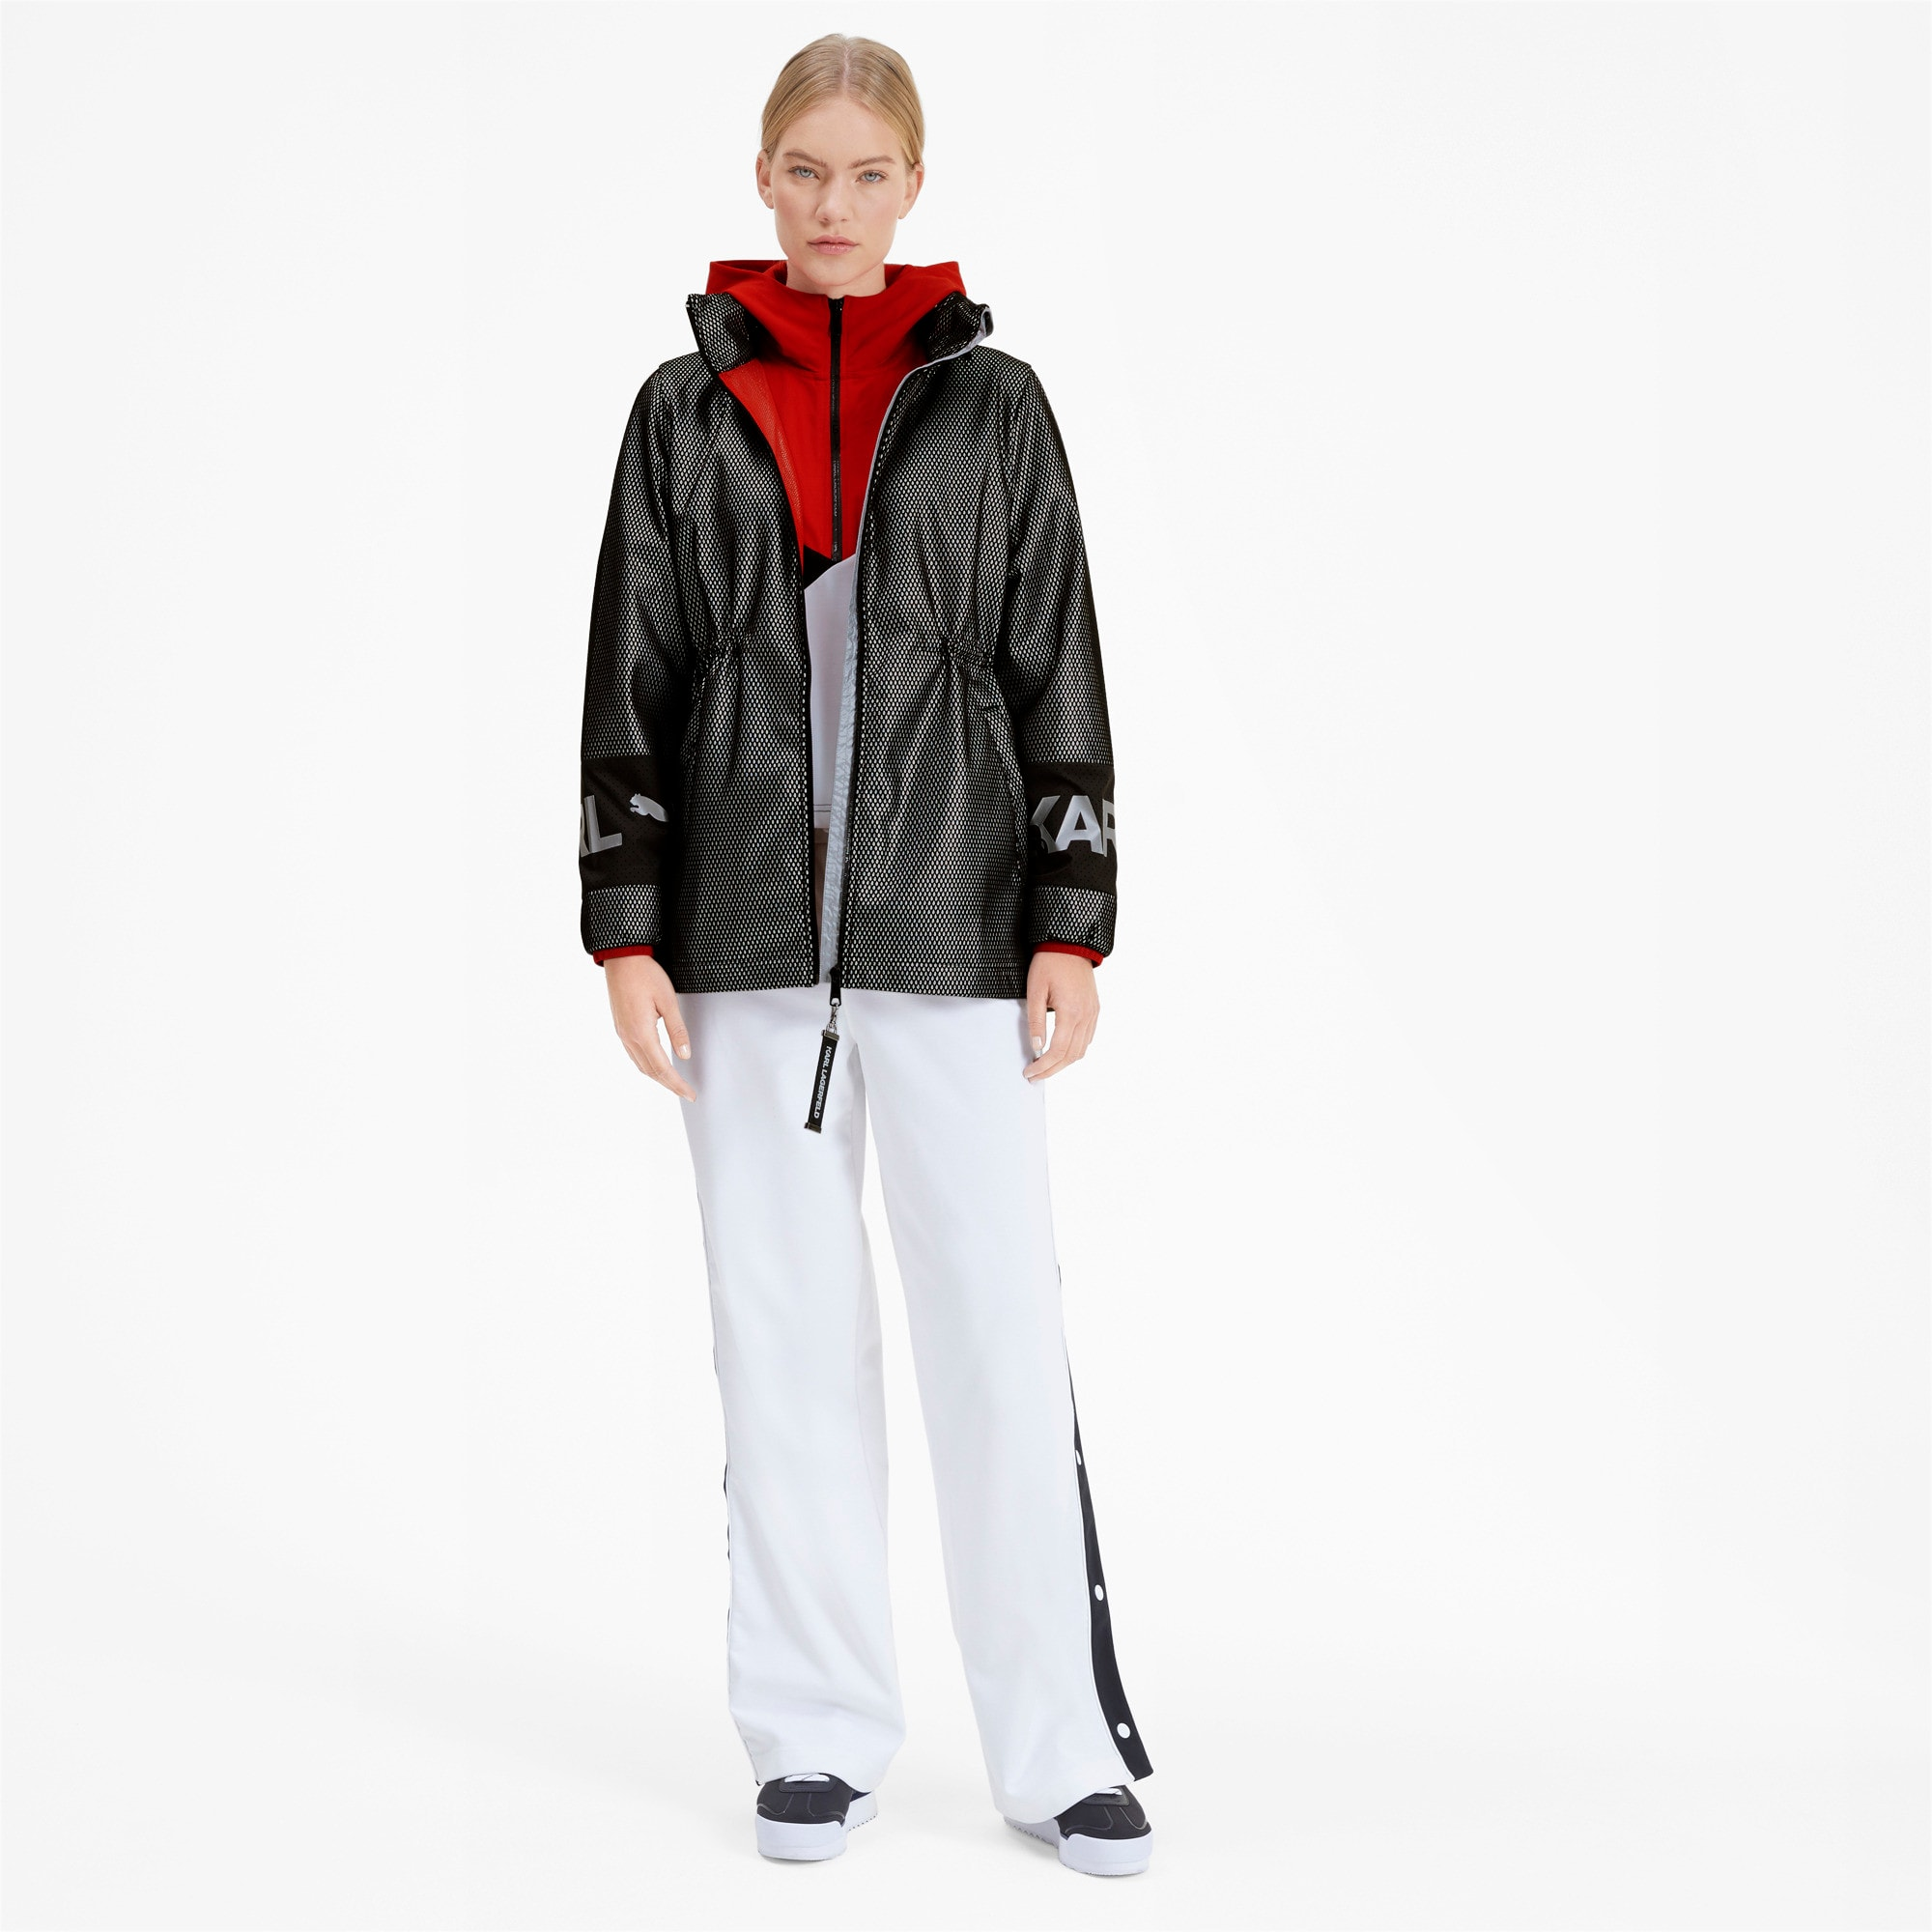 Thumbnail 3 of PUMA x KARL LAGERFELD Damen Outerwear Jacke, Puma Black, medium